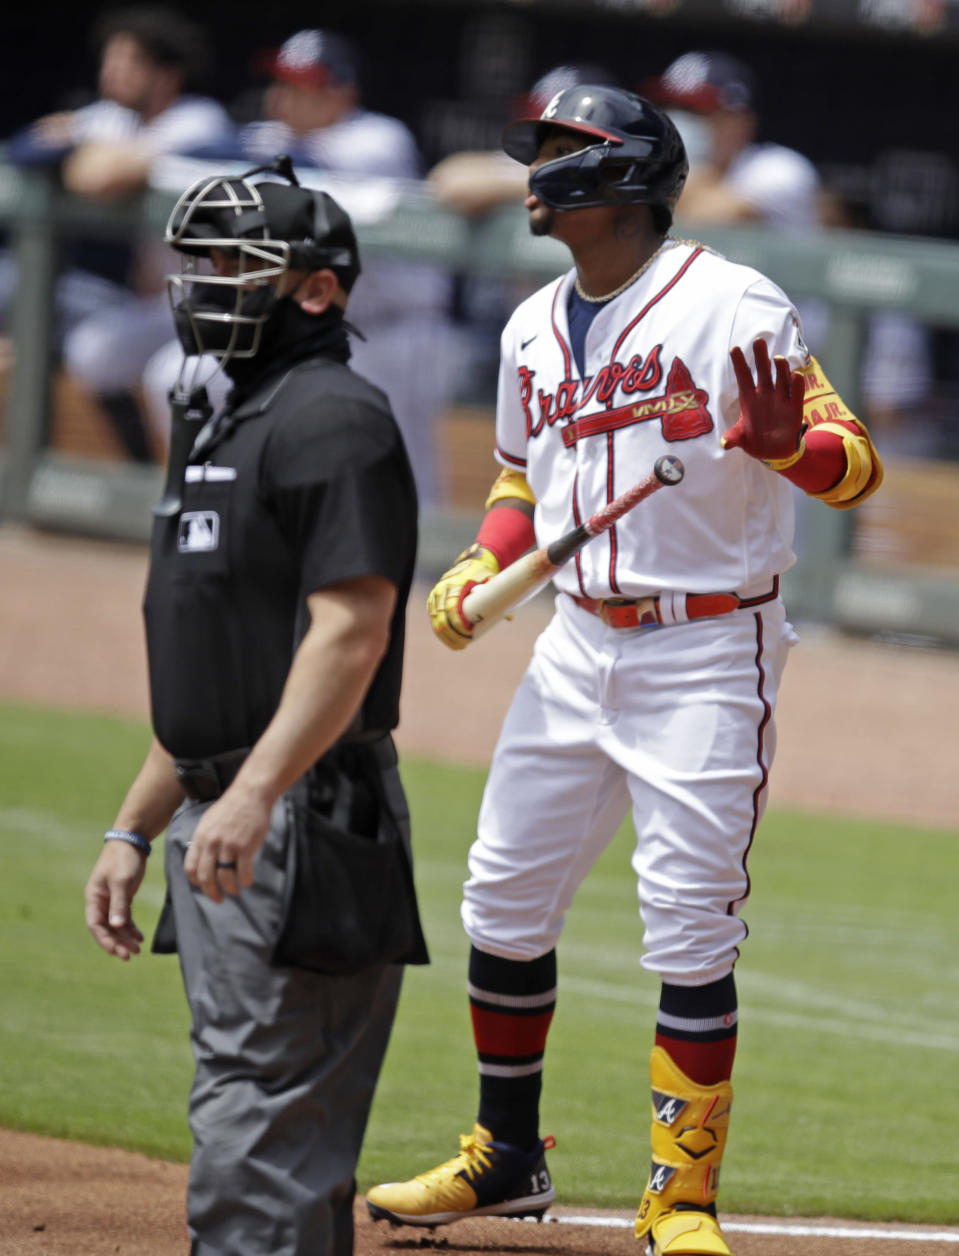 Atlanta Braves' Ronald Acuna Jr., right, watches to see if his home run hit off Toronto Blue Jays pitcher Ross Stripling stays fair in the first inning of a baseball game Thursday, May 13, 2021, in Atlanta. (AP Photo/Ben Margot)